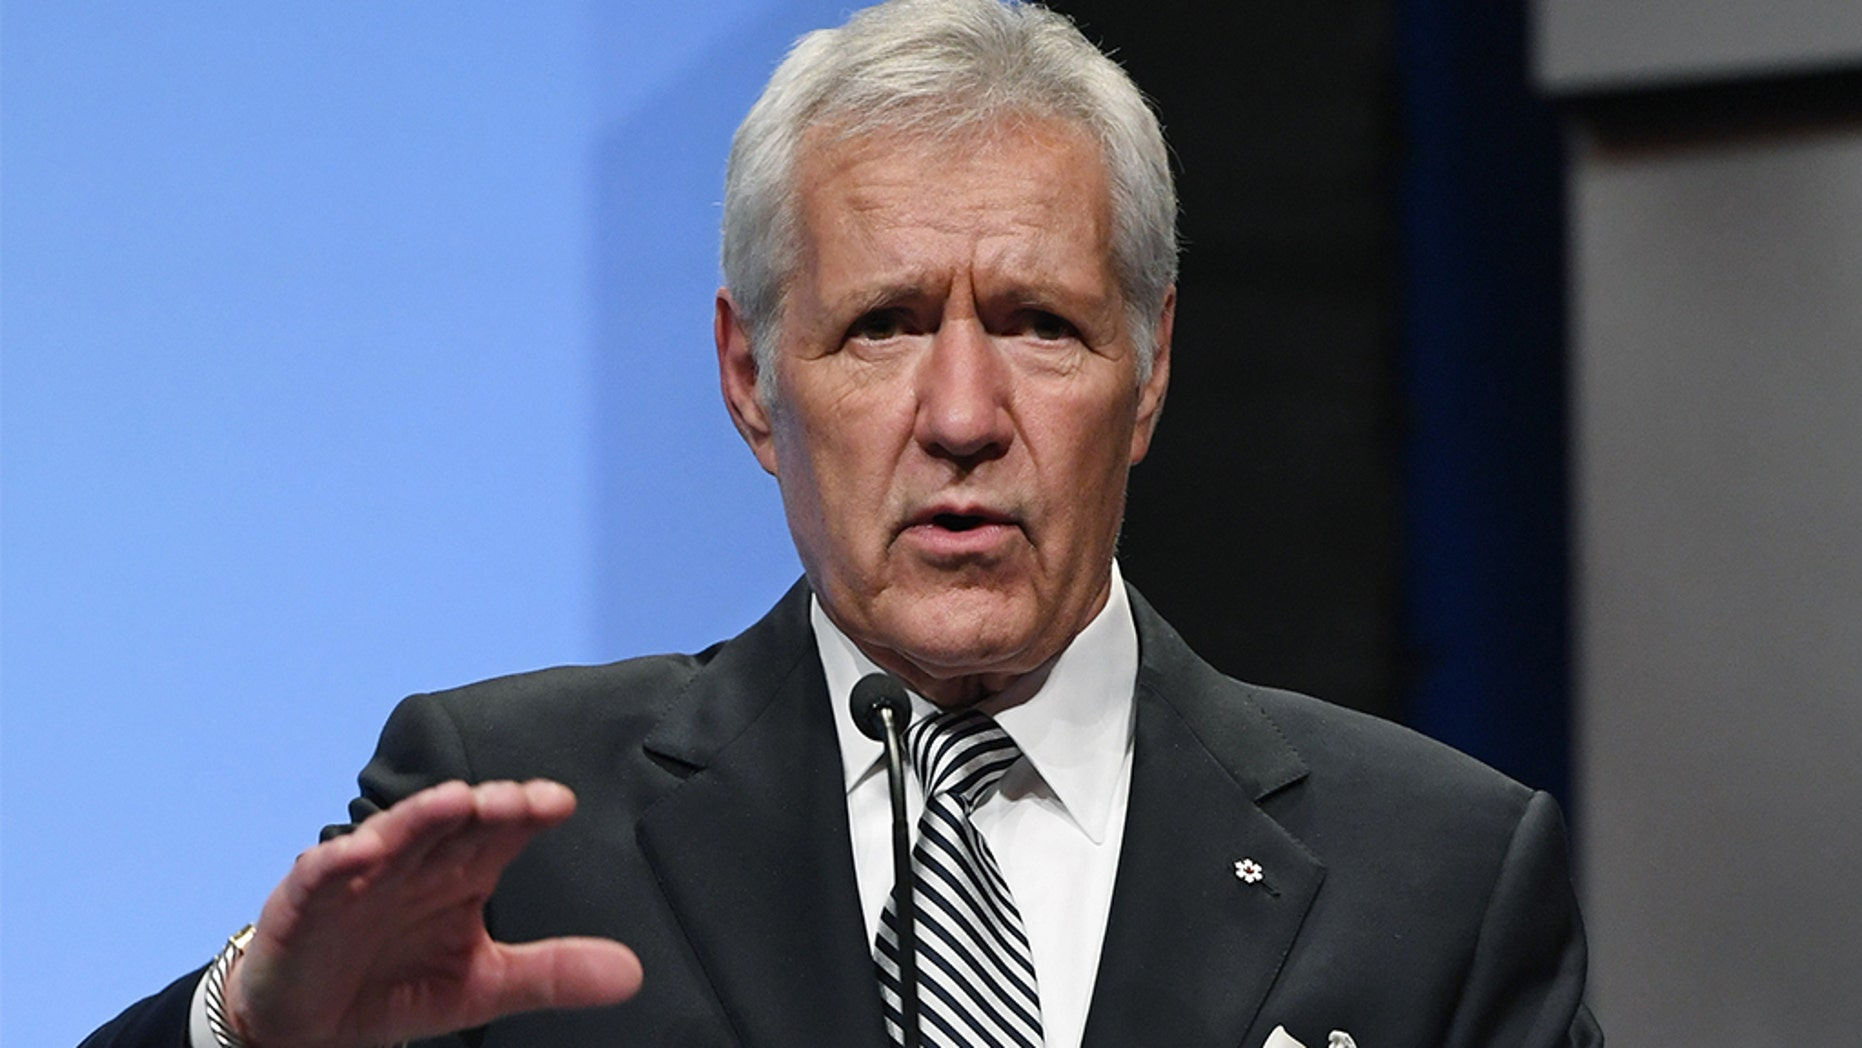 Alex Trebek spoke out about the #MeToo movement in a recent interview.